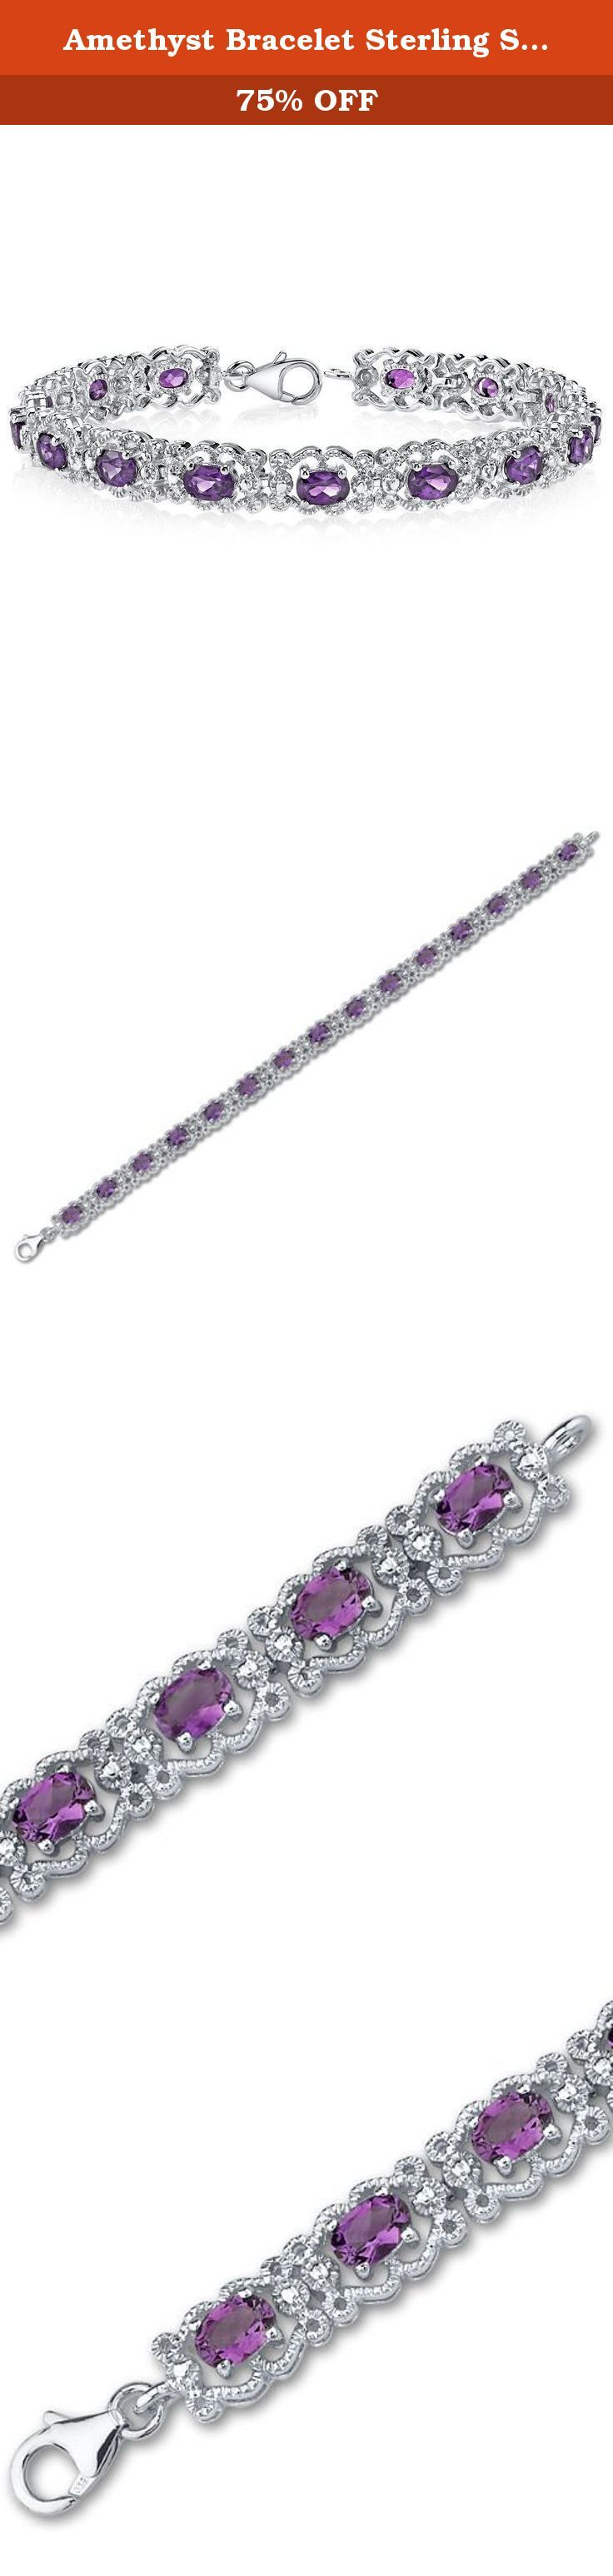 Amethyst Bracelet Sterling Silver 6.00 Carats Vintage Design. 6.00 carats total weight Oval Cut Amethyst Gemstone Bracelet in Sterling Silver Rhodium Nickel Finish Stones: Genuine Amethyst : 15 pieces, Oval Cut 6x4mm, 6.00 carats total weight Gemstones have a deep rich color and tremendous fire. Bracelet: 17.05 grams Pure Sterling Silver Rhodium Nickel Finish with .925 stamp 71/4 length, 3/8 width Approximate Retail Value: $169.99 Bracelet features one of akind design with a beautiful…